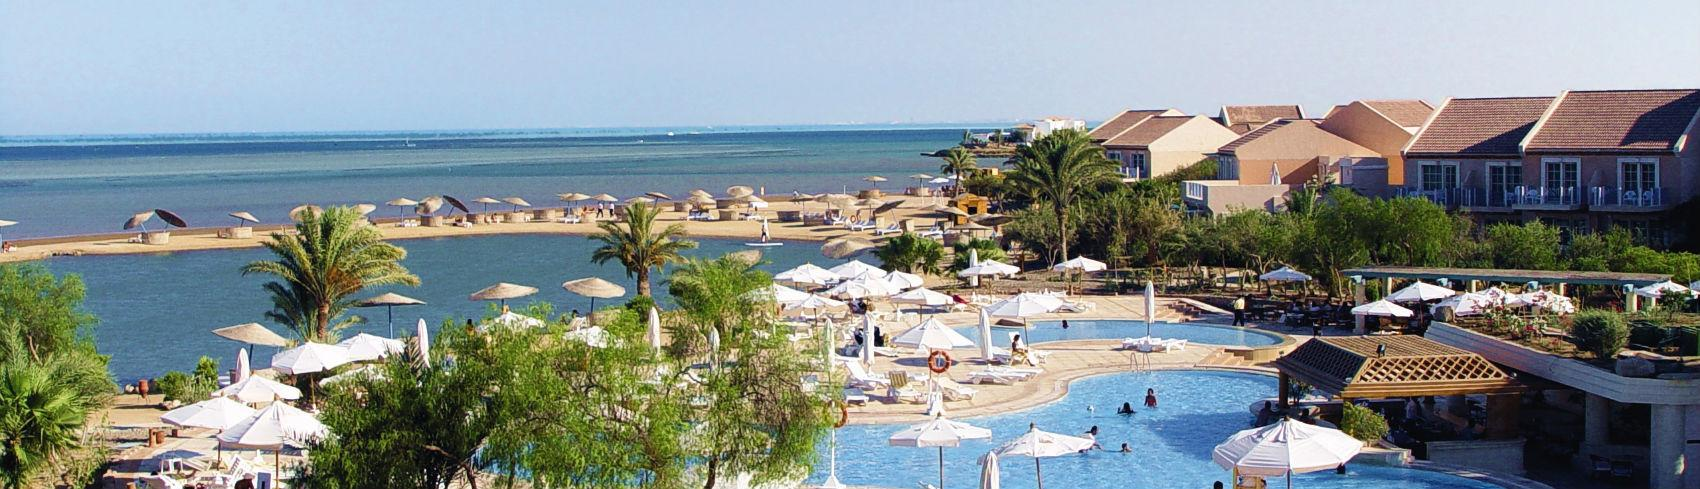 Mvenpick Resort Spa El Gouna 5 Star Red Sea Voucher Hotel Intercontinental Bali Jimbaran